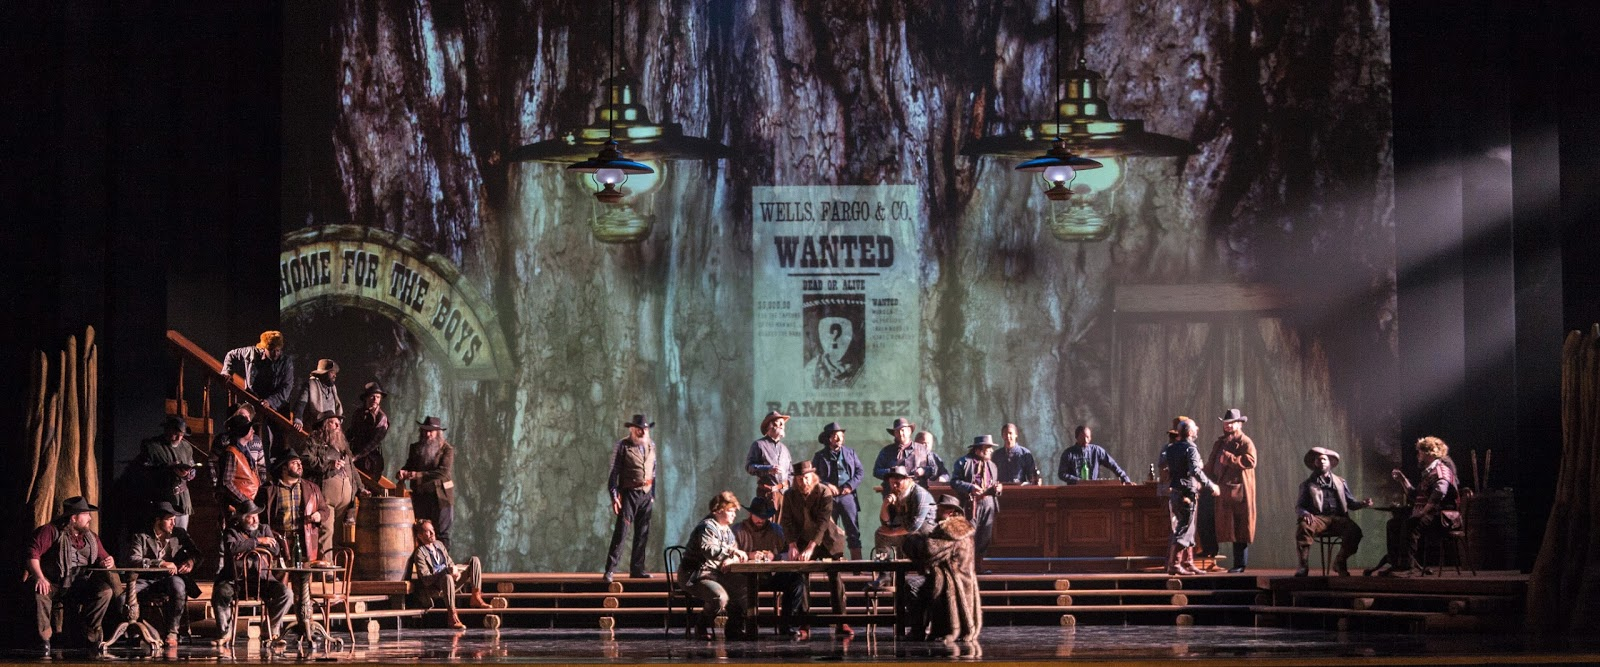 IN PERFORMANCE: The cast of Opera Carolina's production of Giacomo Puccini's LA FANCIULLA DEL WEST, April 2017 [Photo by Mitchell Kearney, © by Opera Carolina]